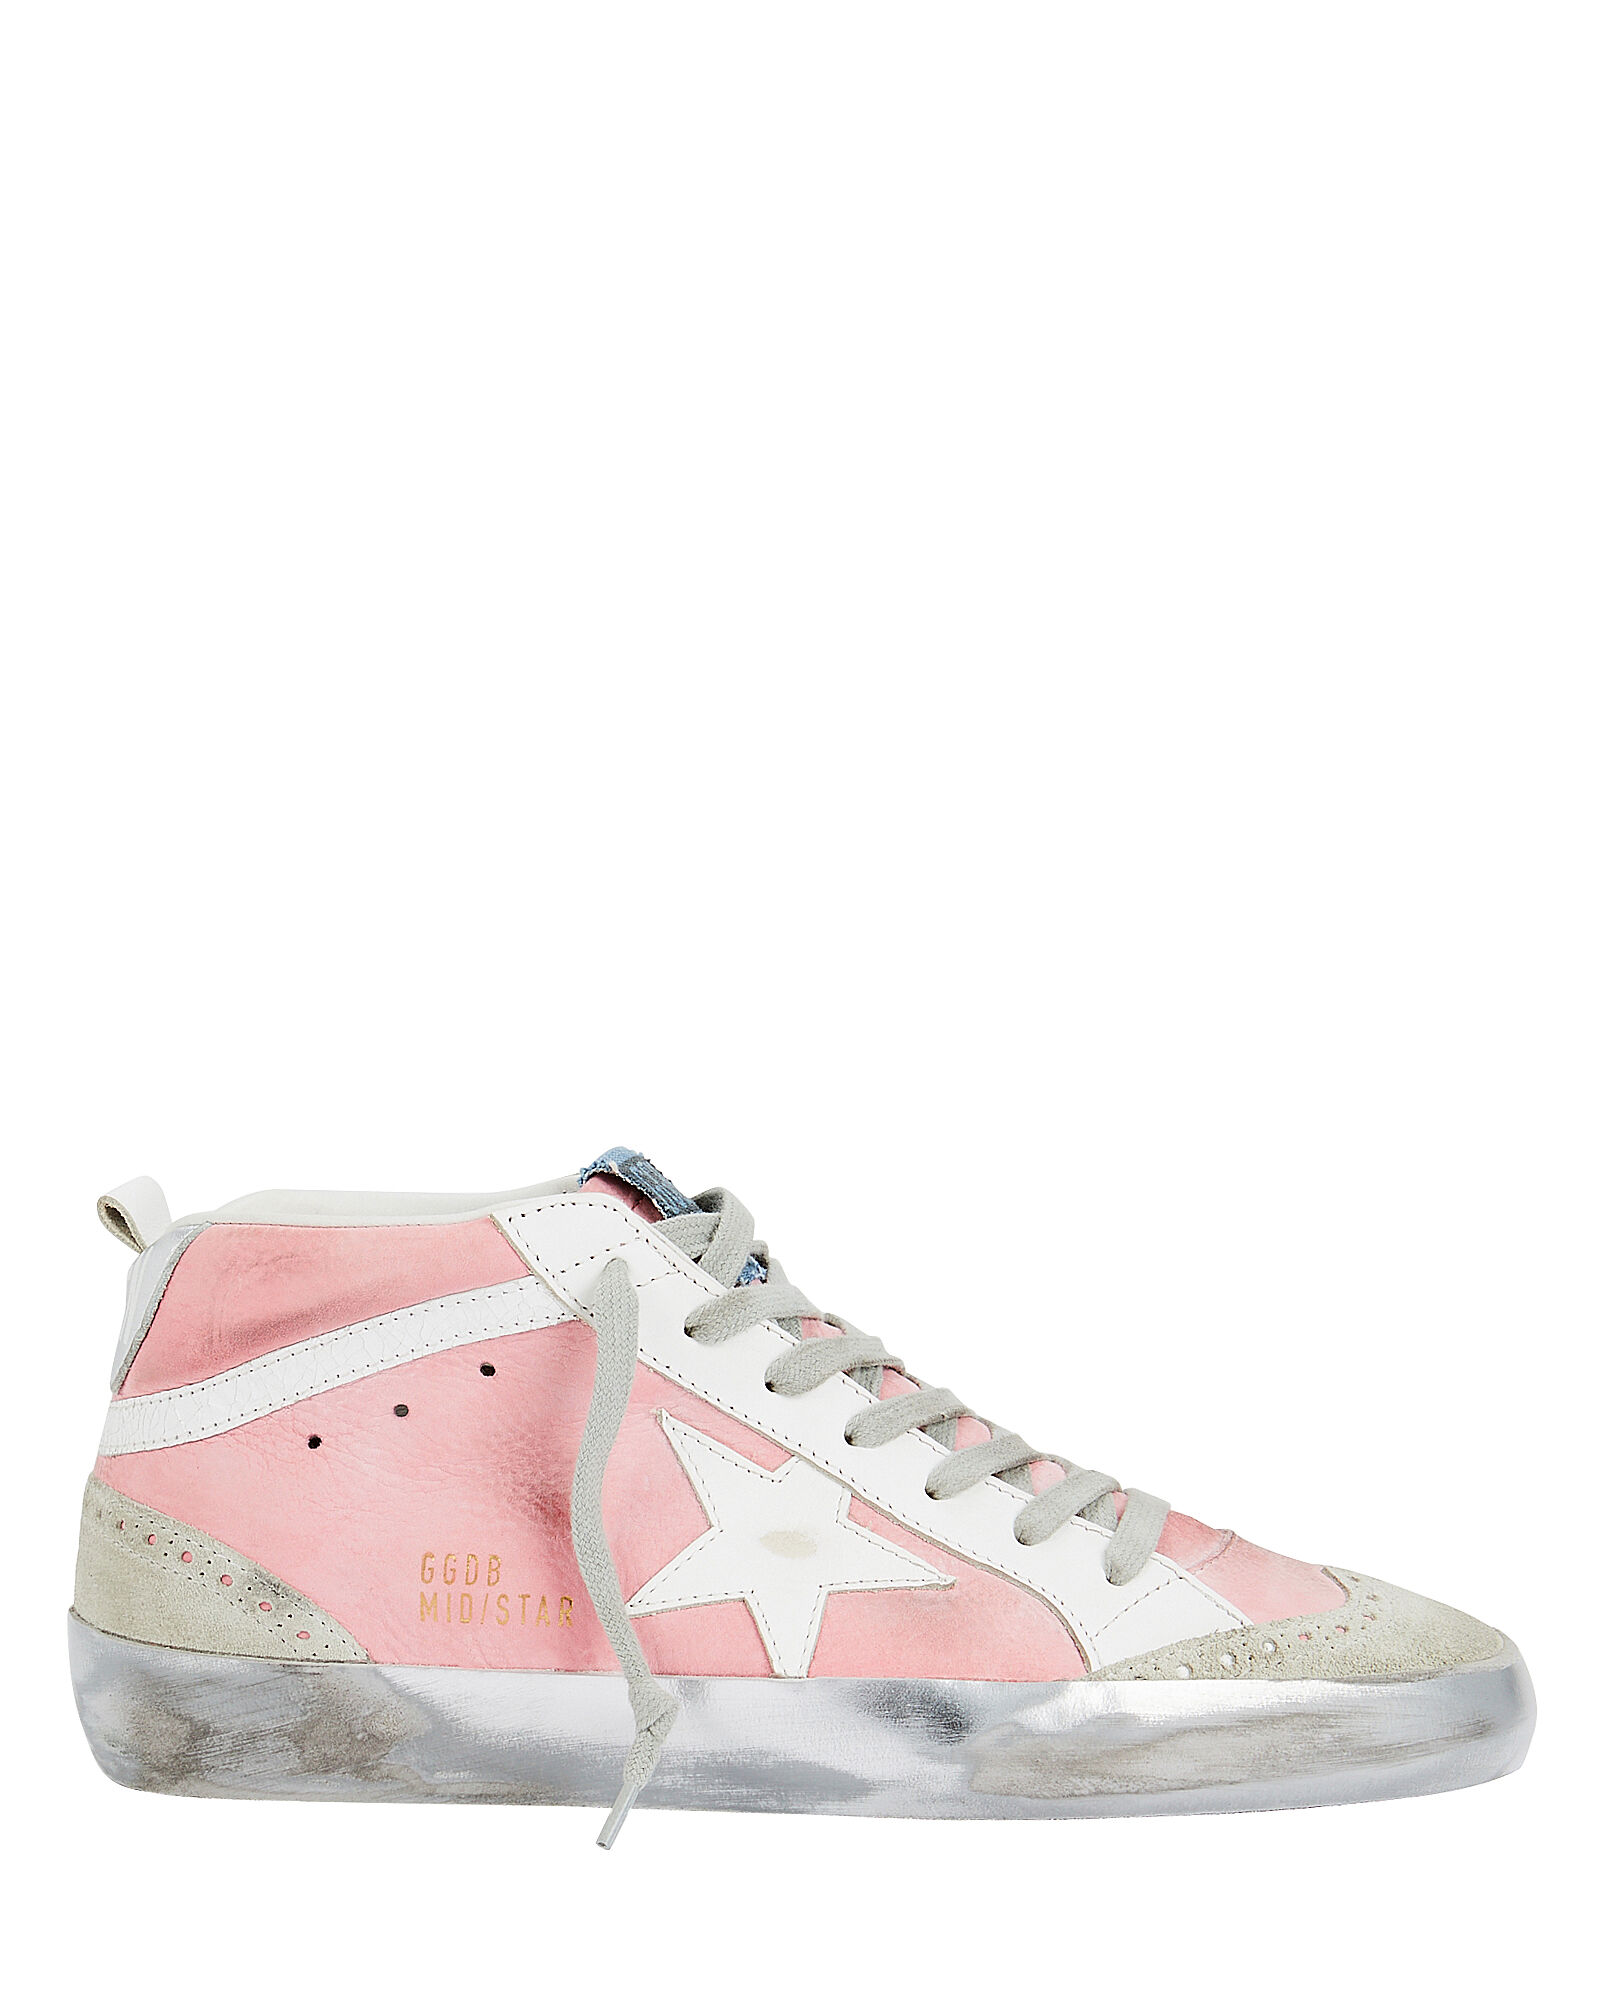 909061b1ba5309 Mid Star Blush Suede Sneakers